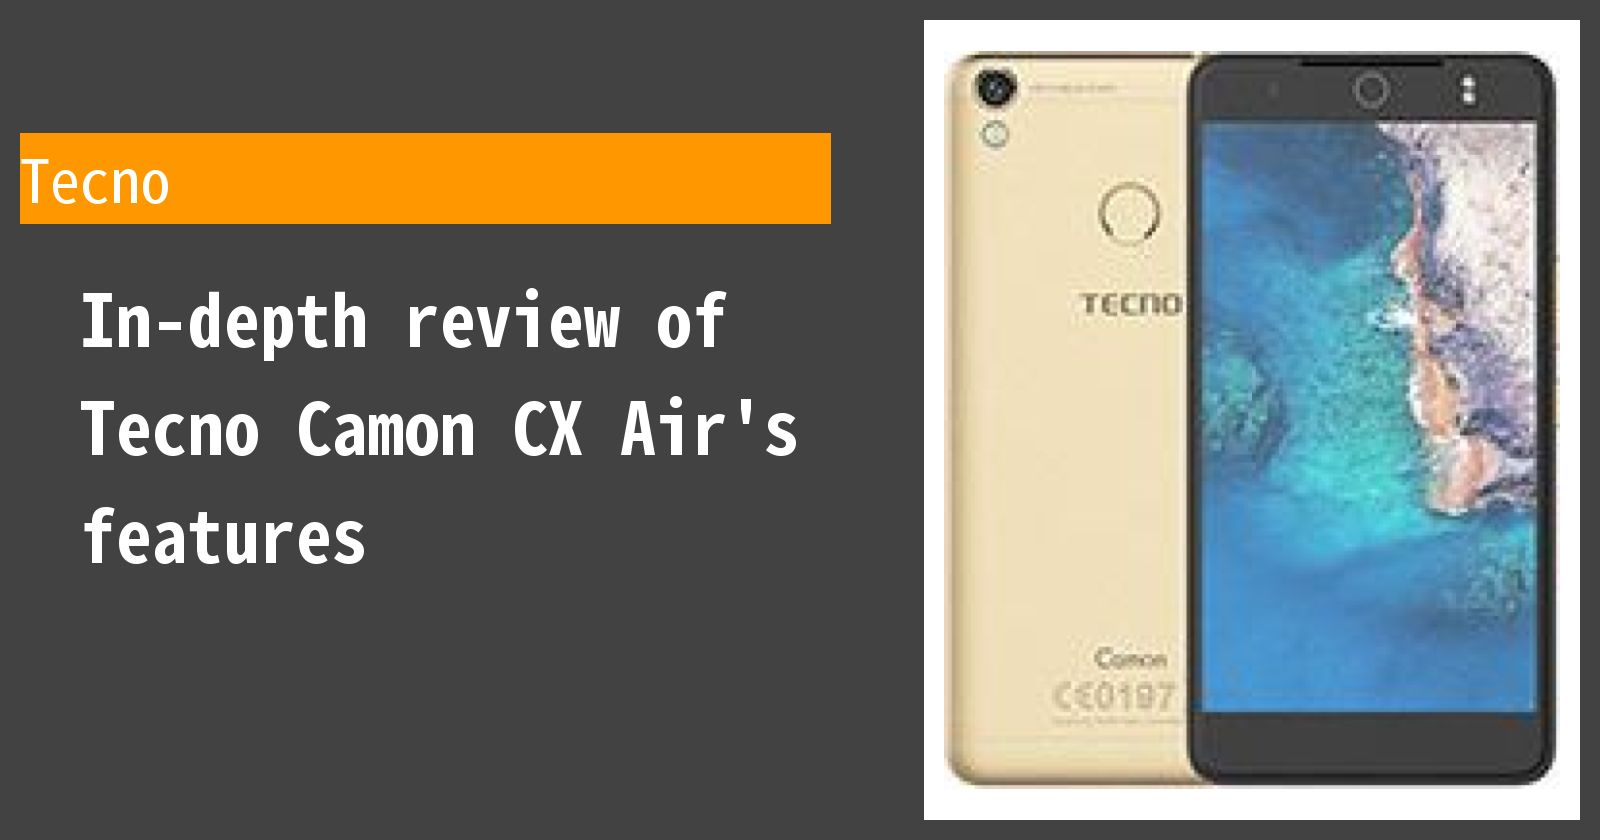 Review of Tecno Camon CX Air  Thorough explanation of the pros and